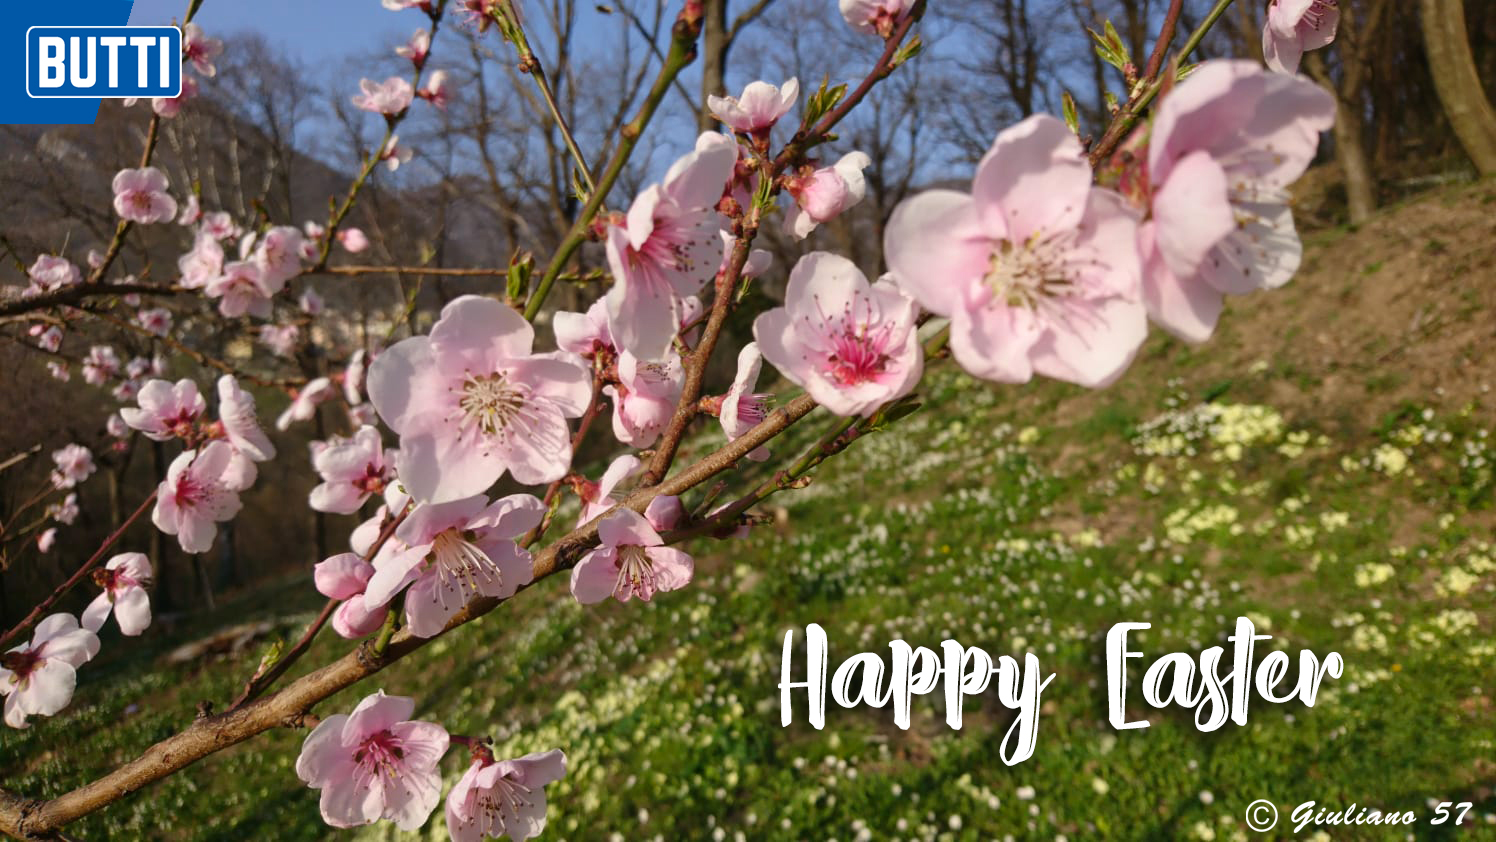 Butti wishes you all a very Happy Easter!